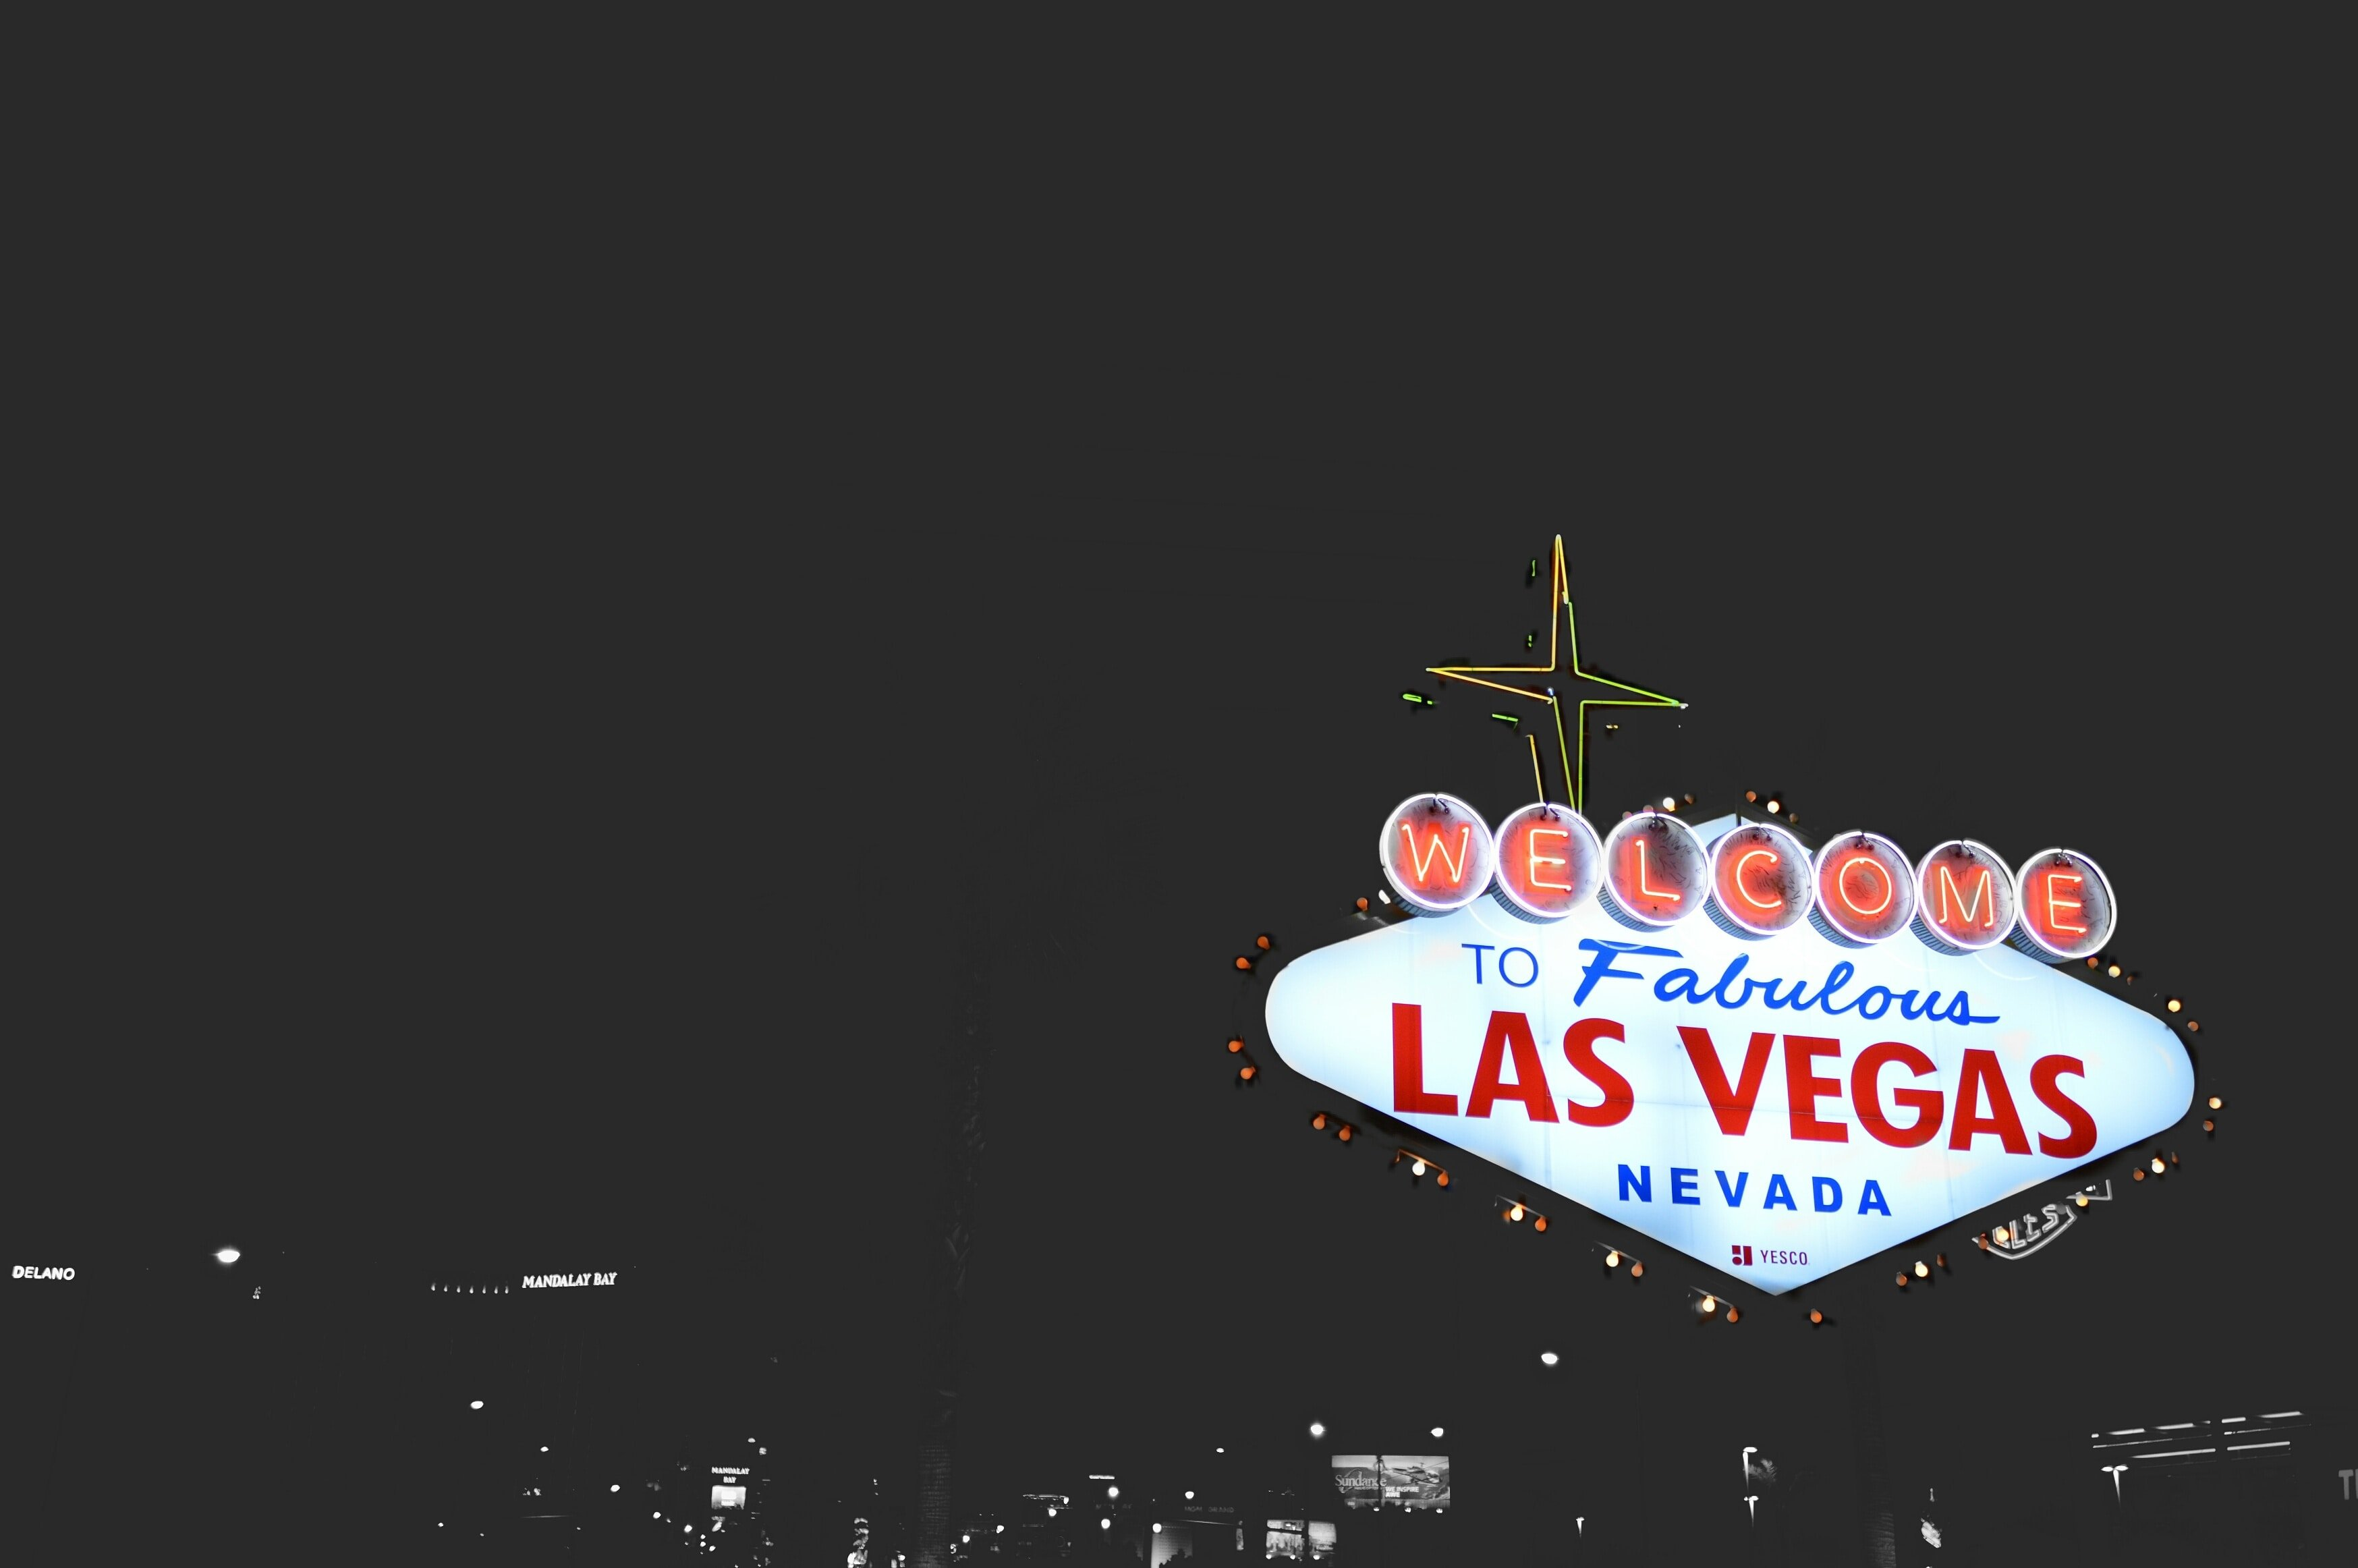 A sign from Vegas | Unsplash